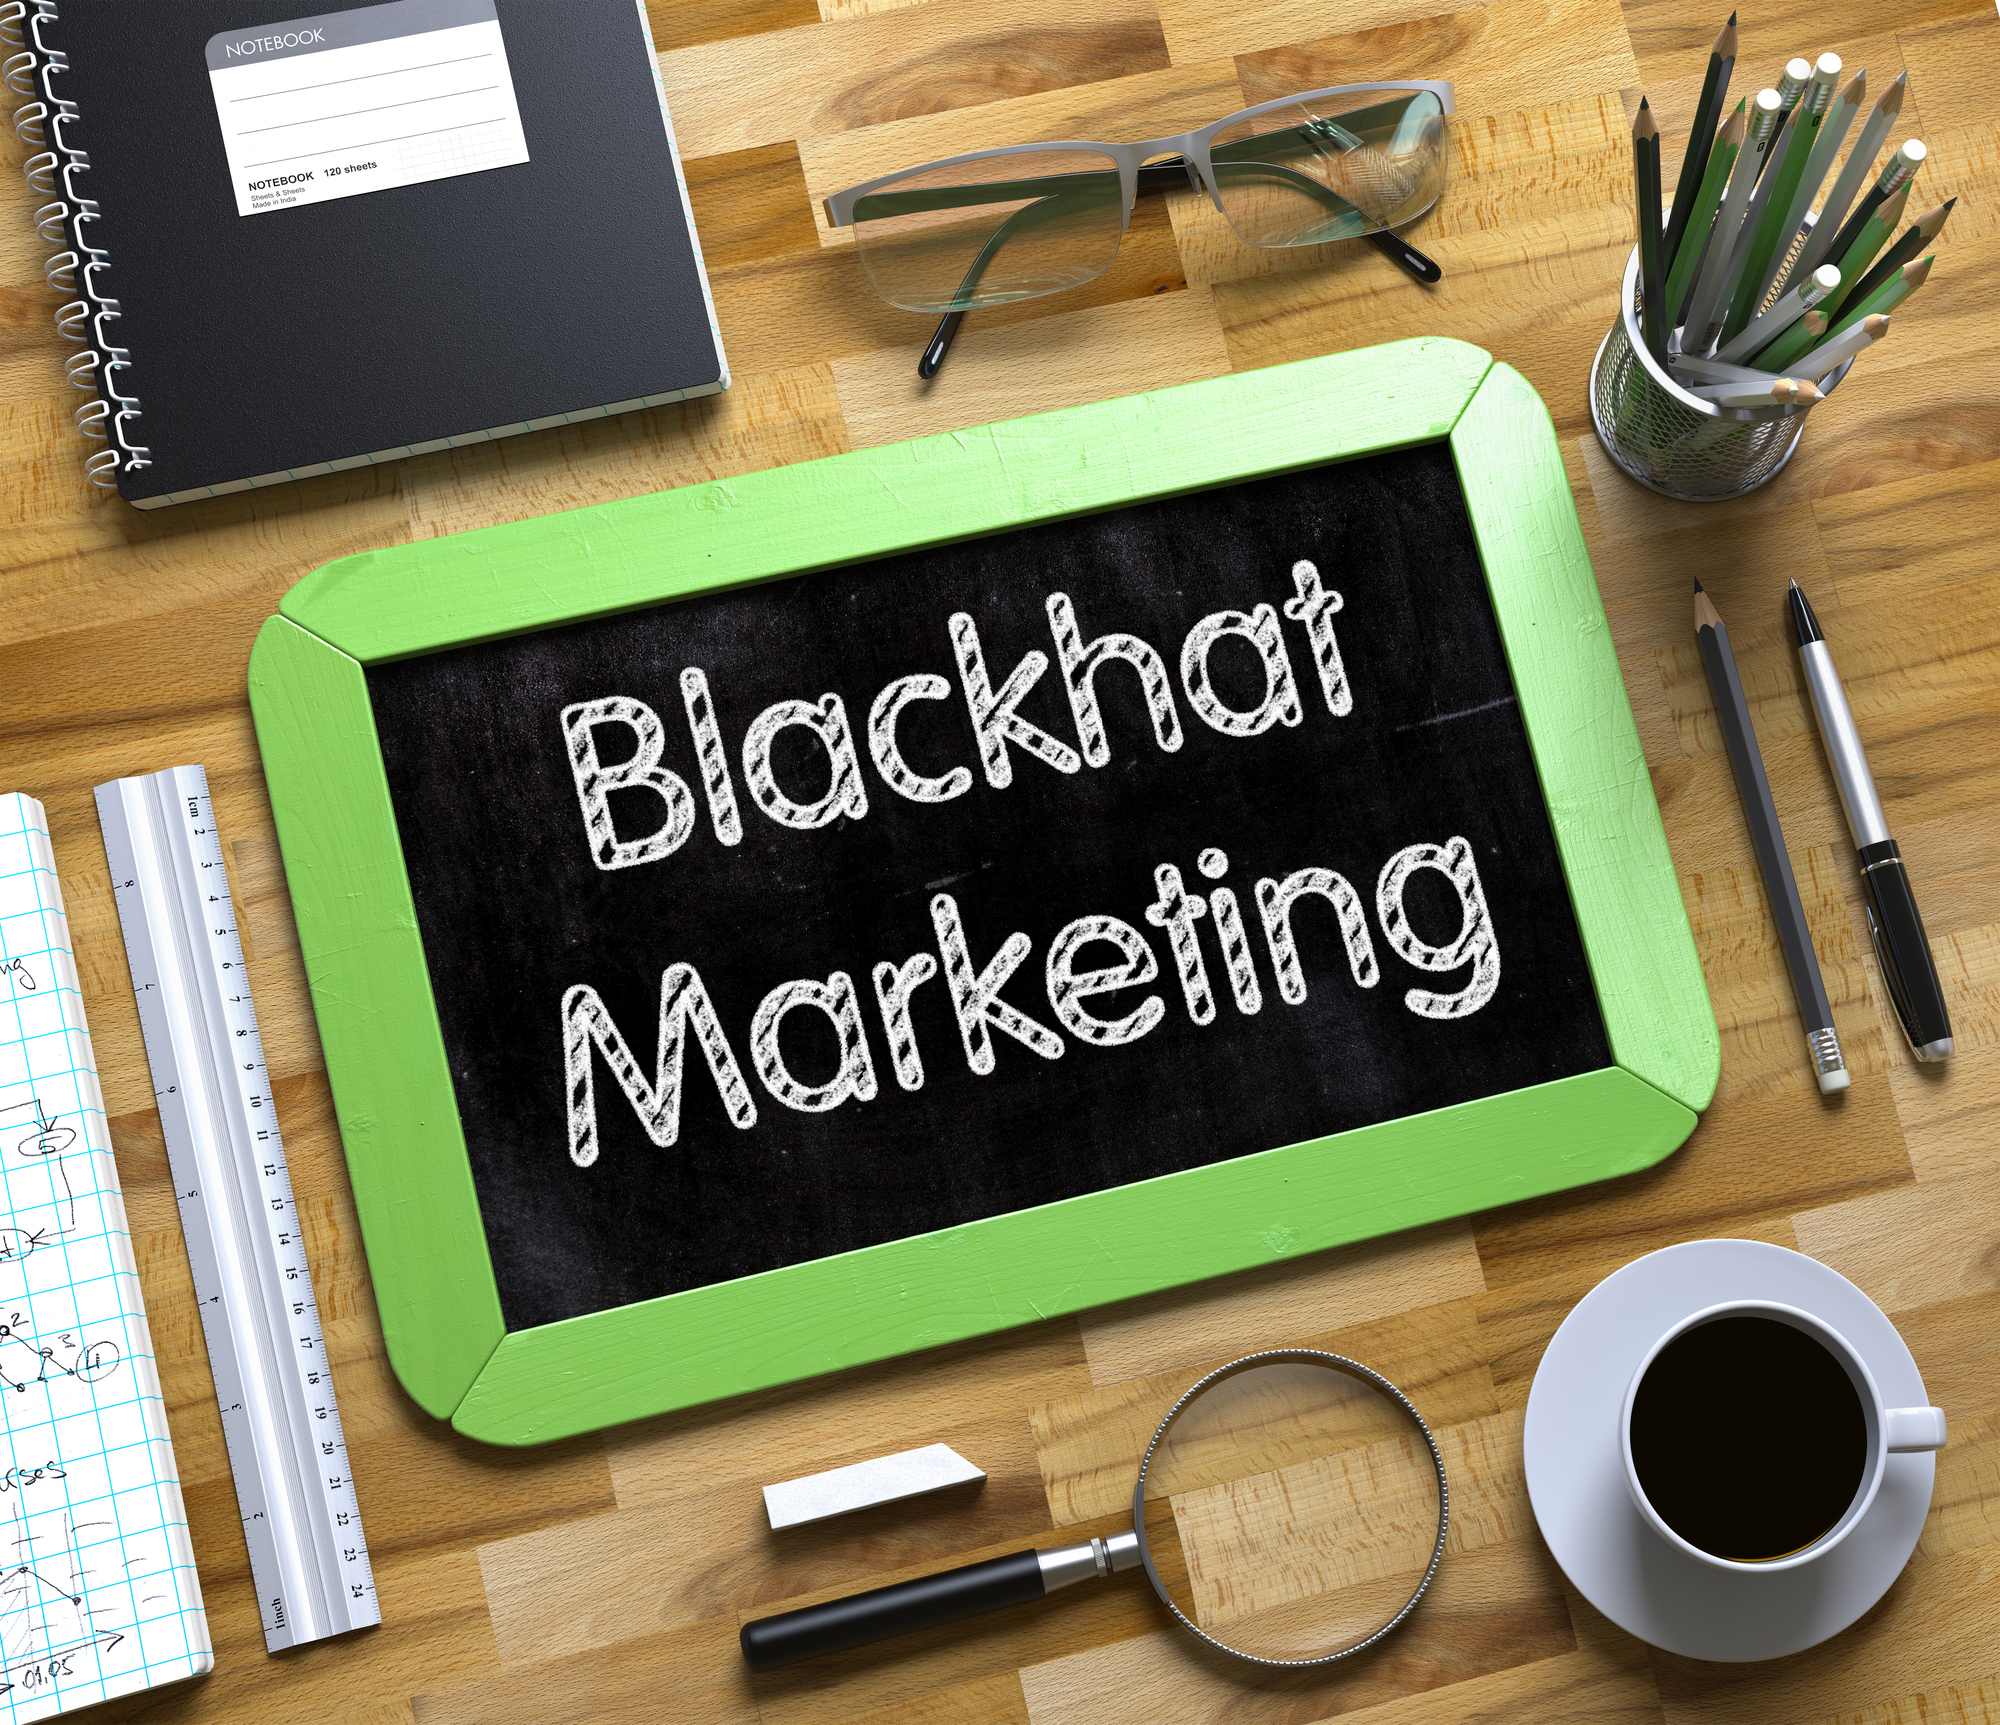 Black hat social media marketing